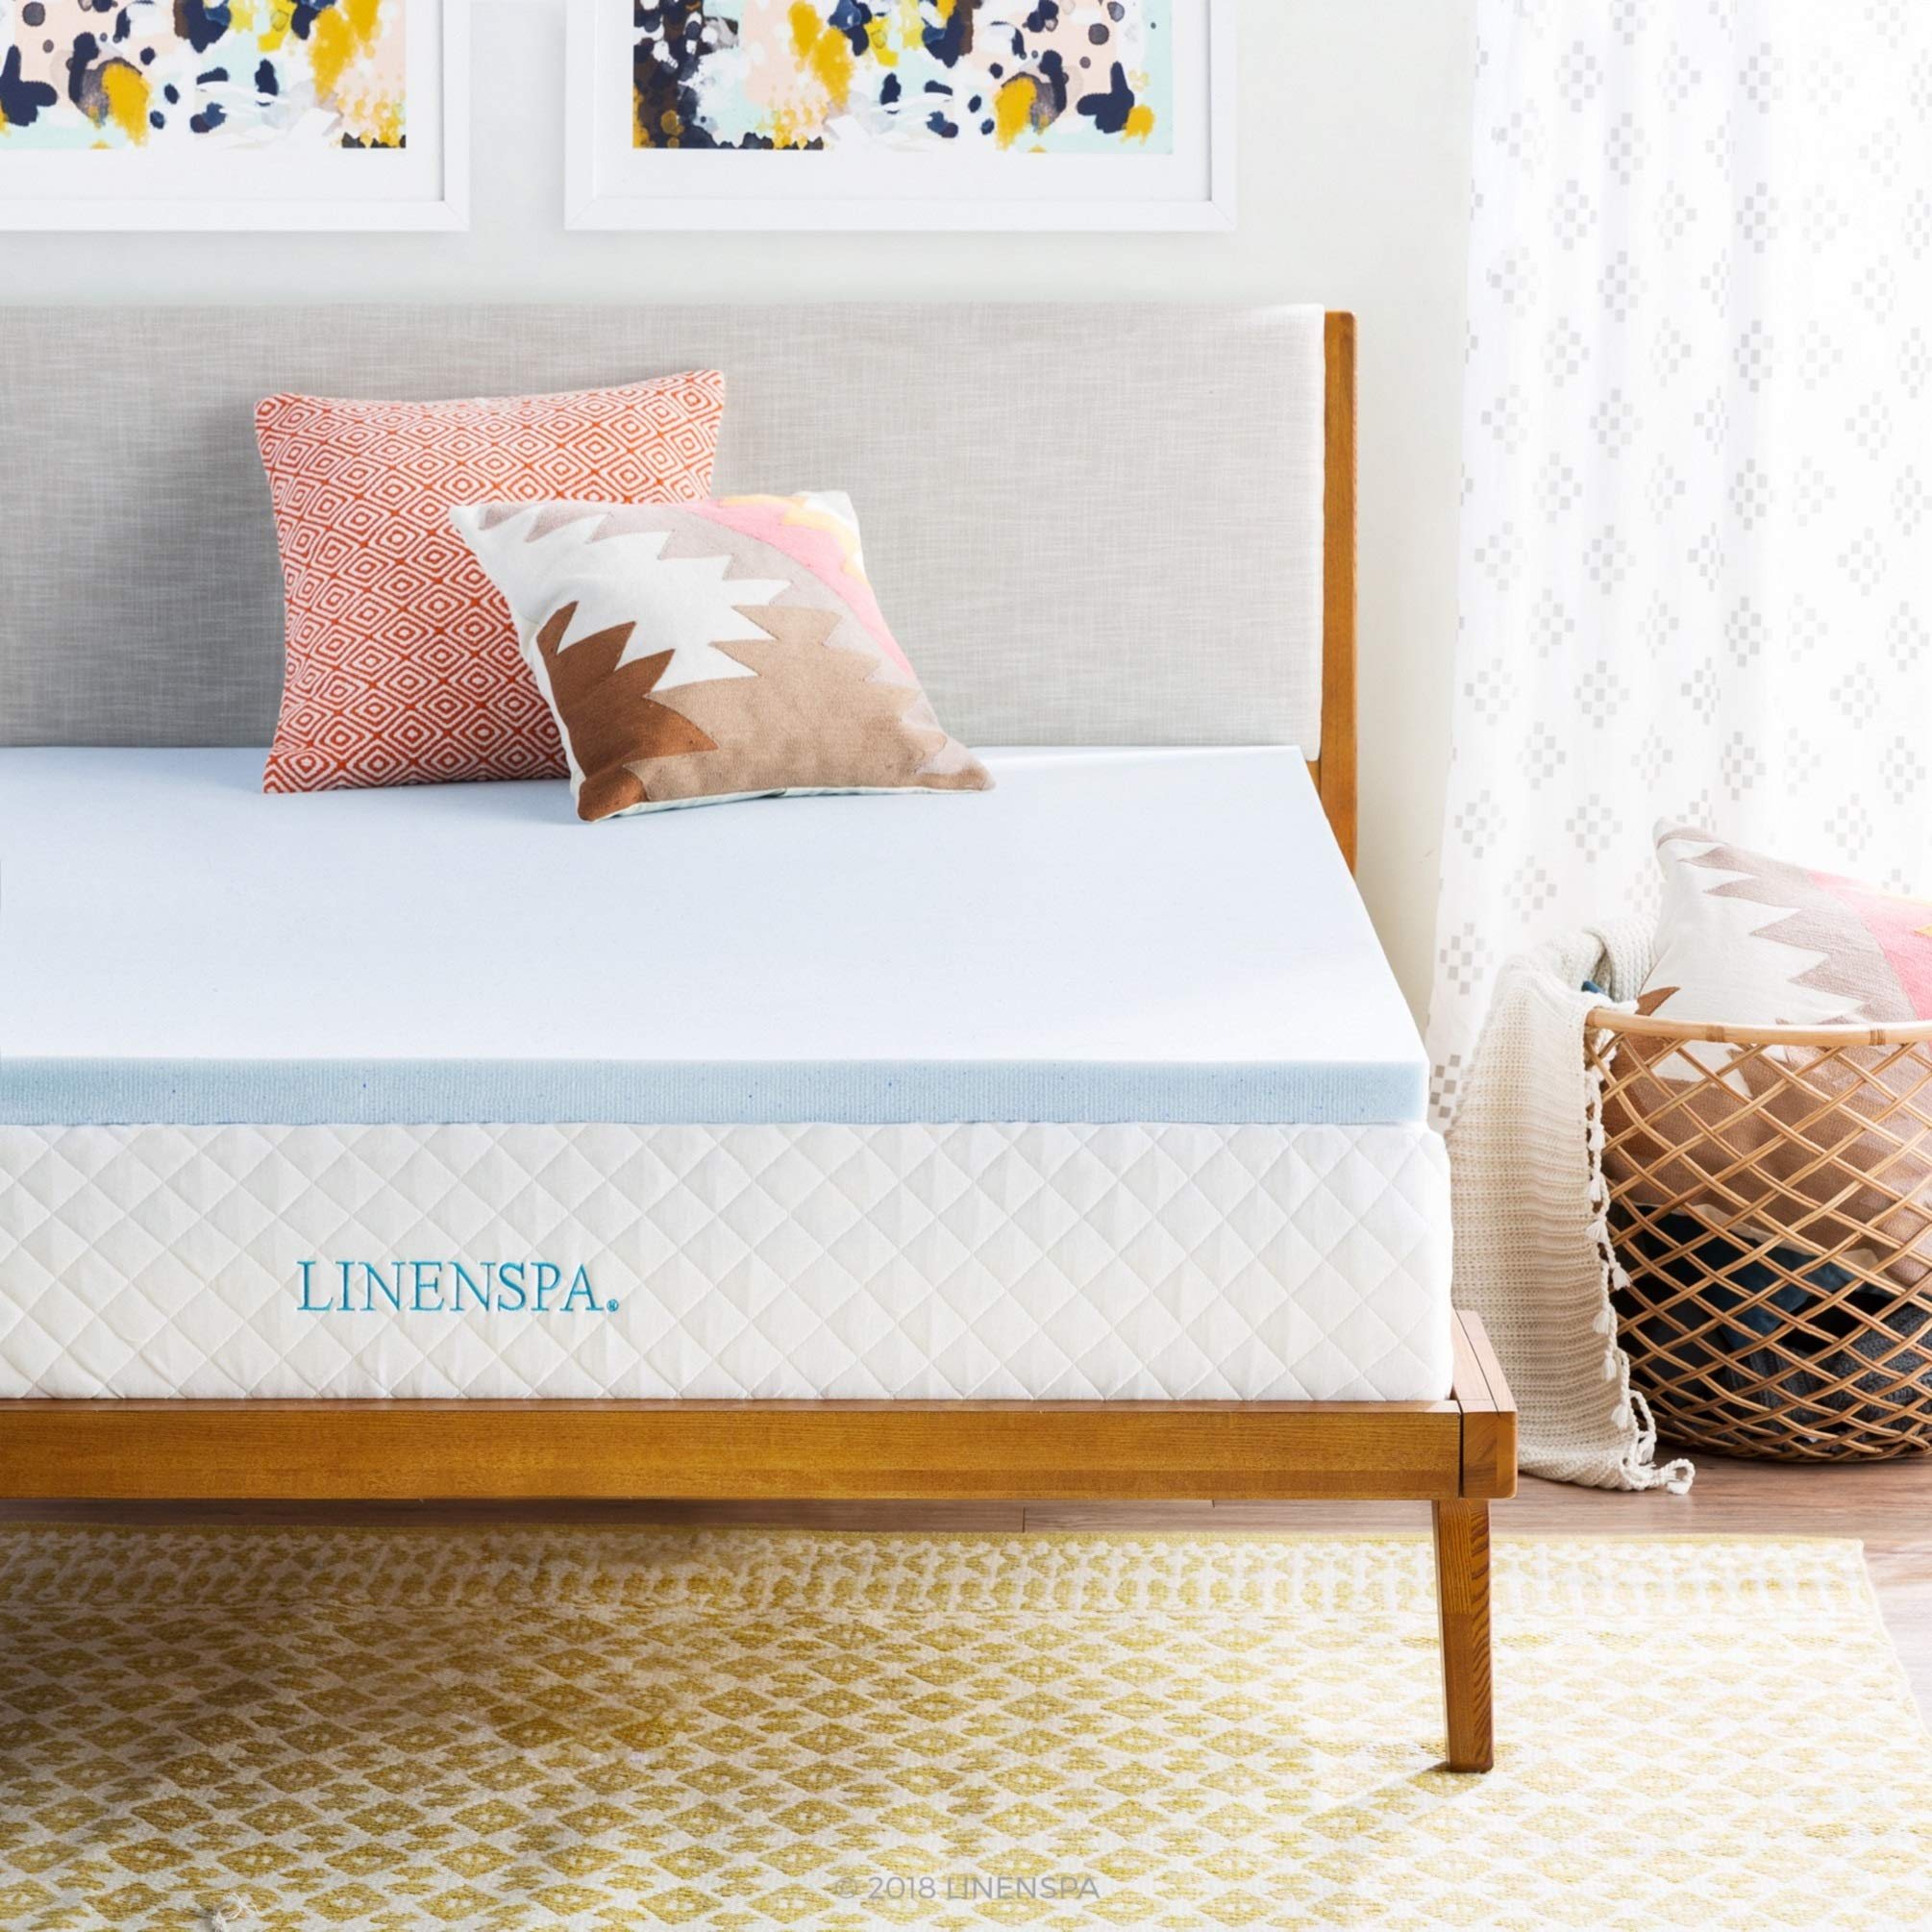 Linenspa 2 Inch Gel Infused Memory Foam Mattress Topper, Full by Linenspa